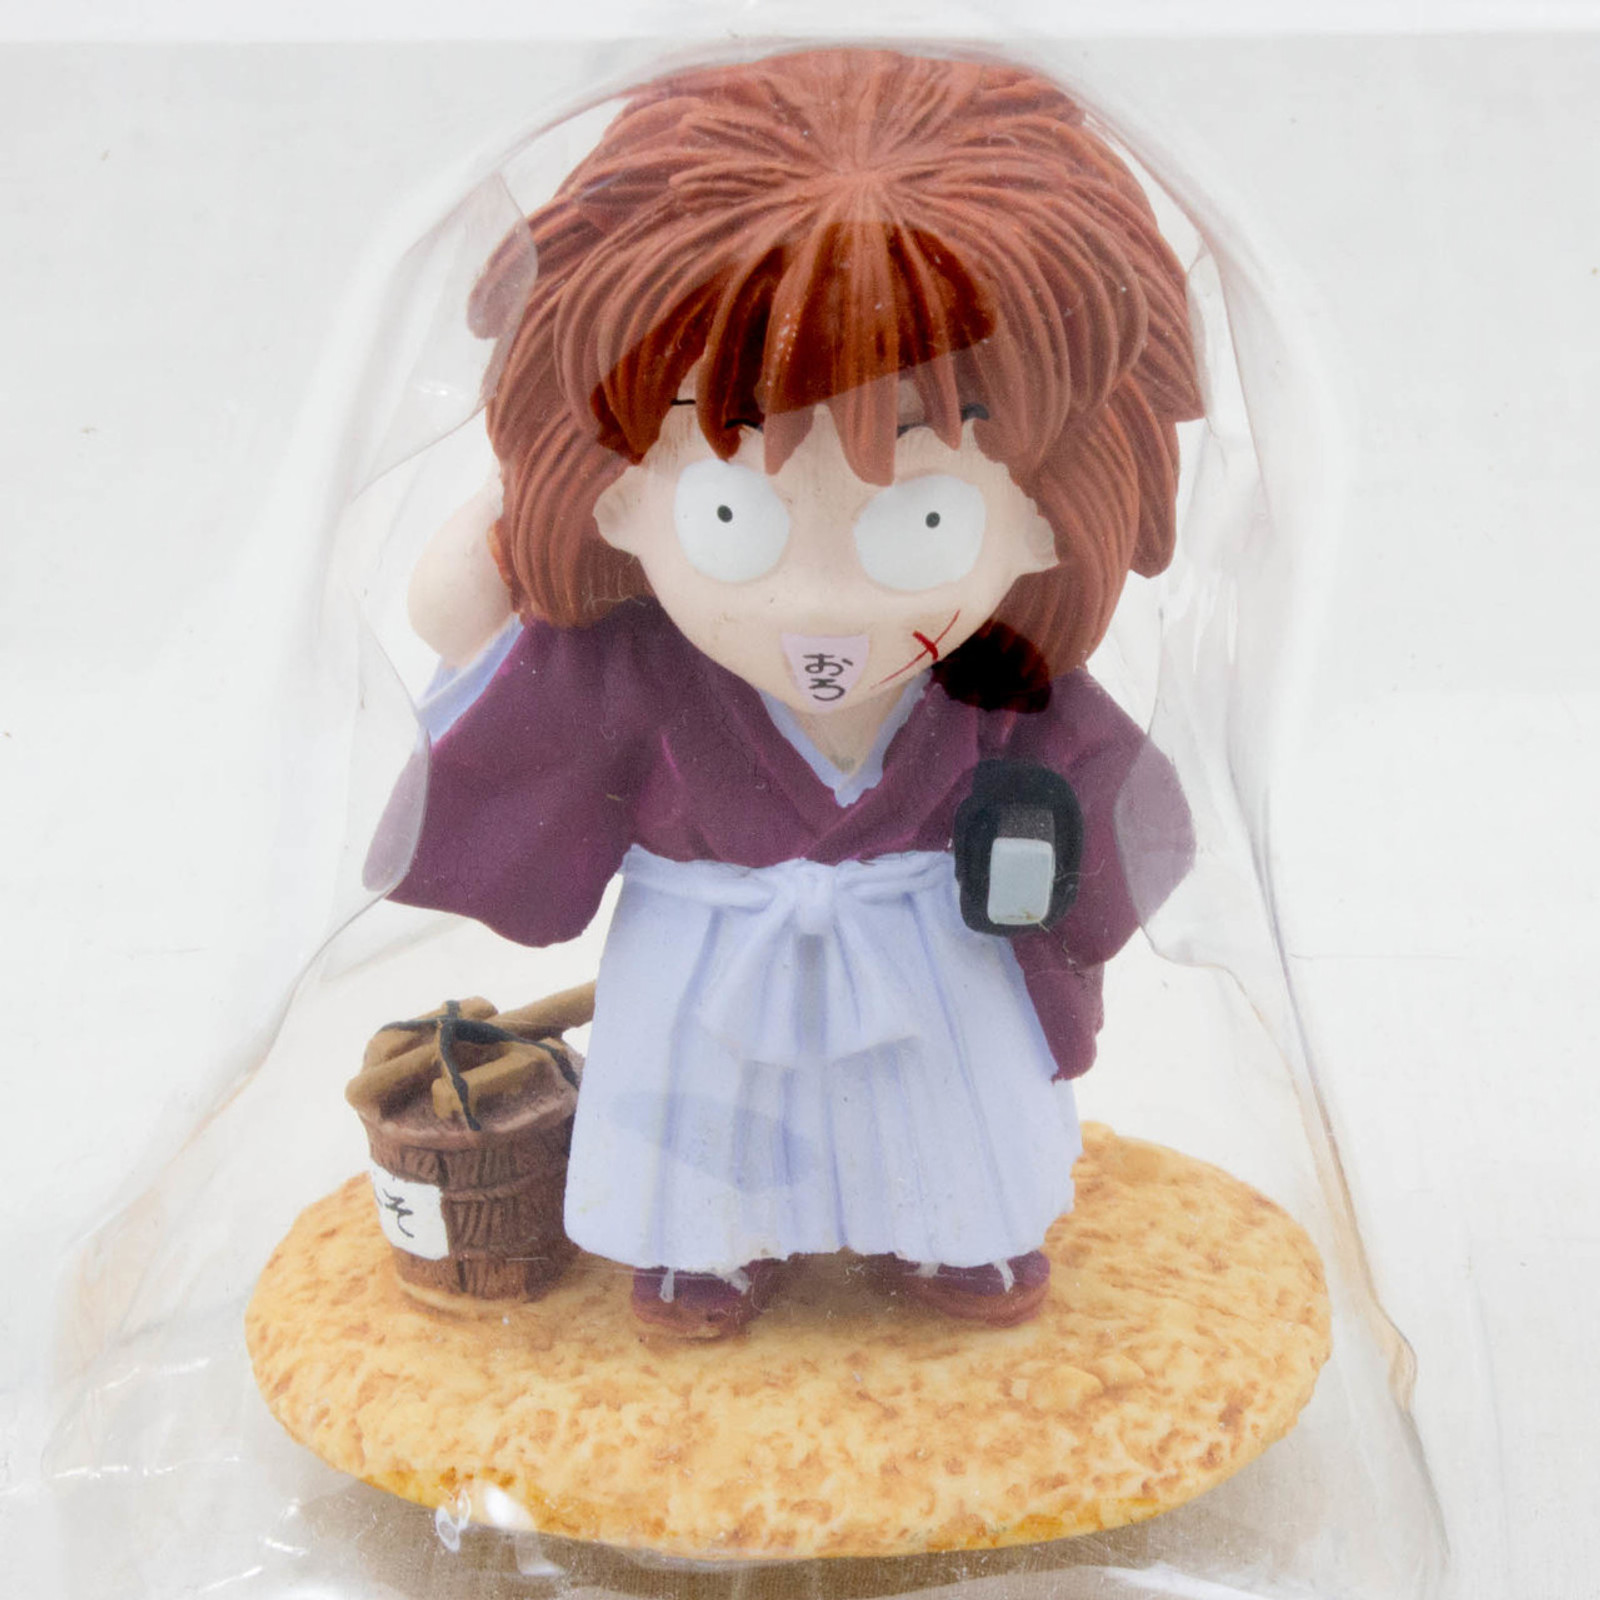 Rurouni Kenshin Himura Ceramic Figure Surprising Face JAPAN ANIME MANGA